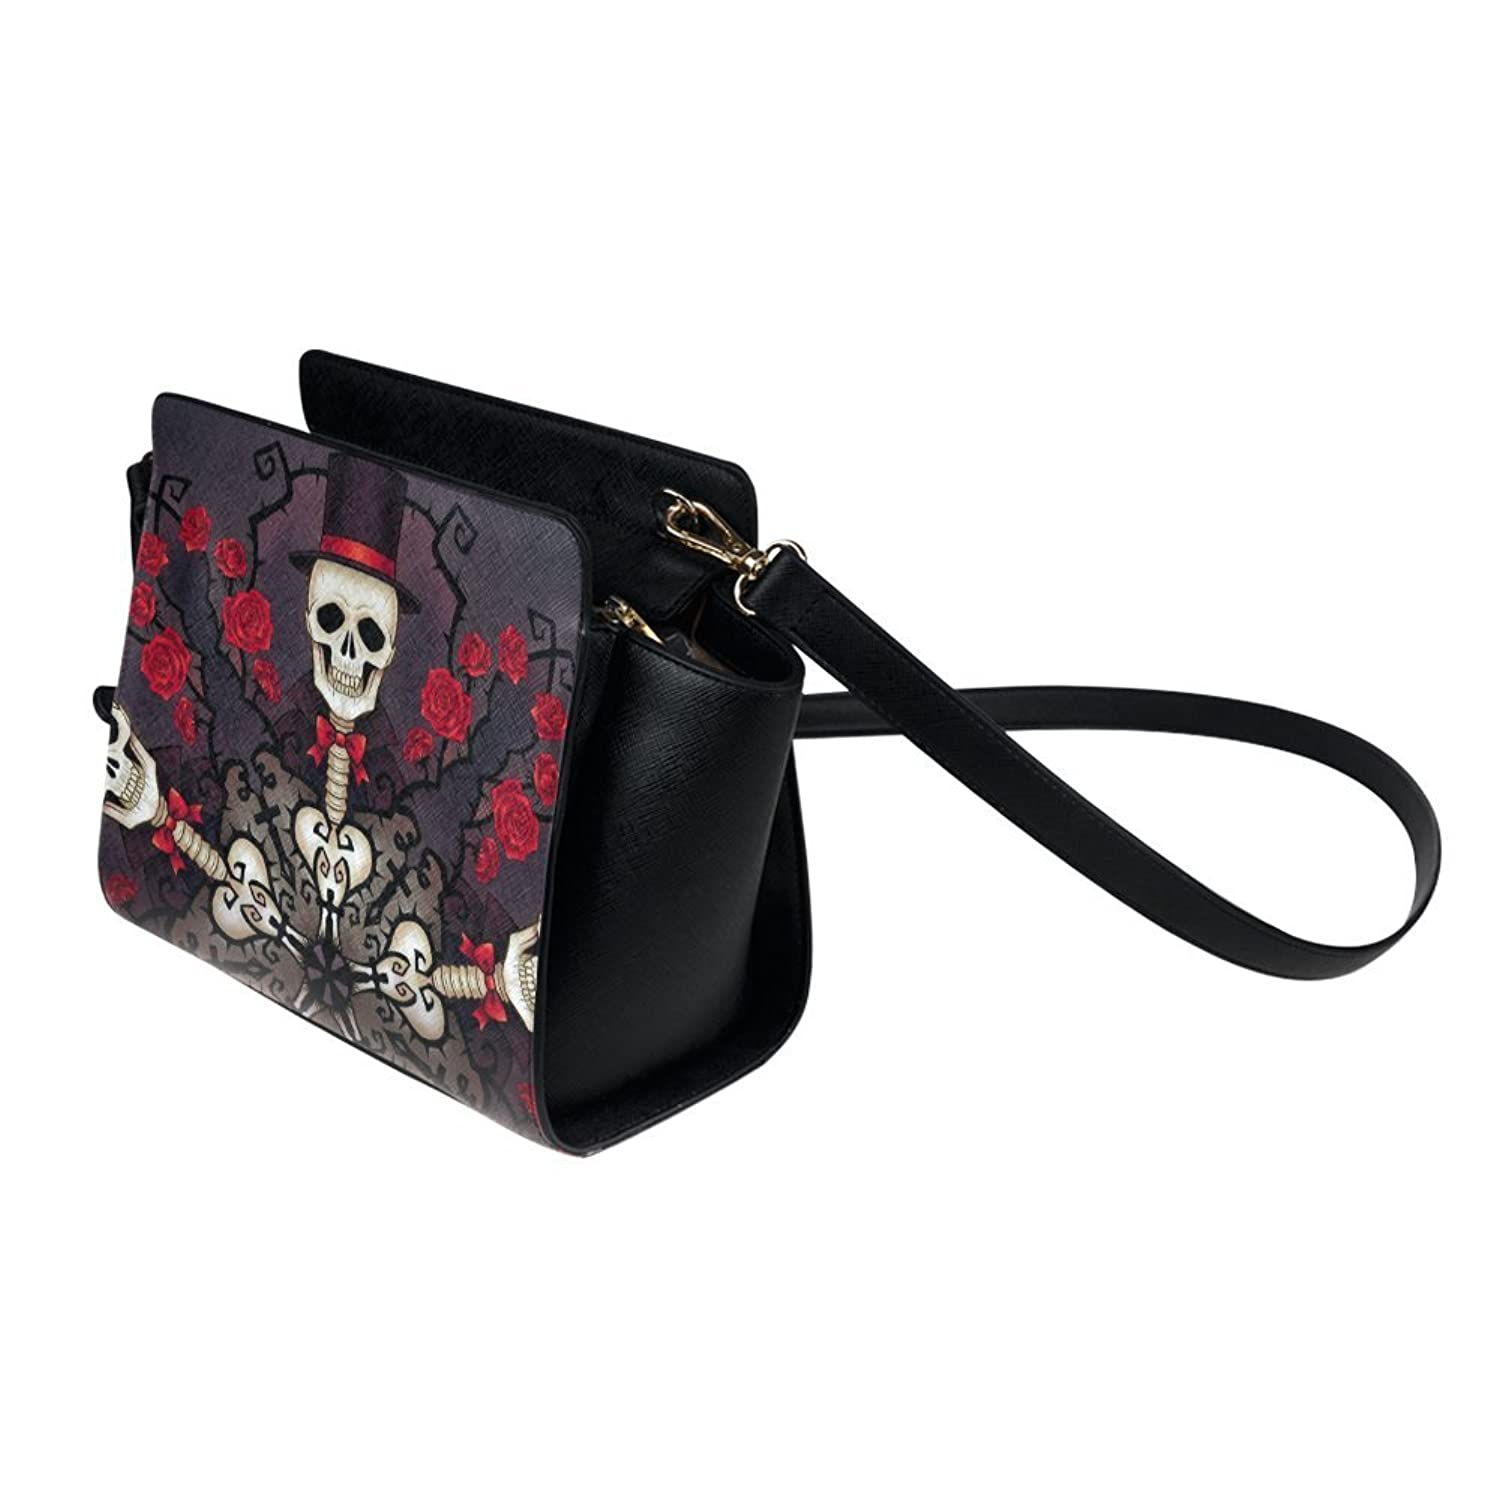 meincare Women's Skeletons and Roses PU leather Satchel Bag